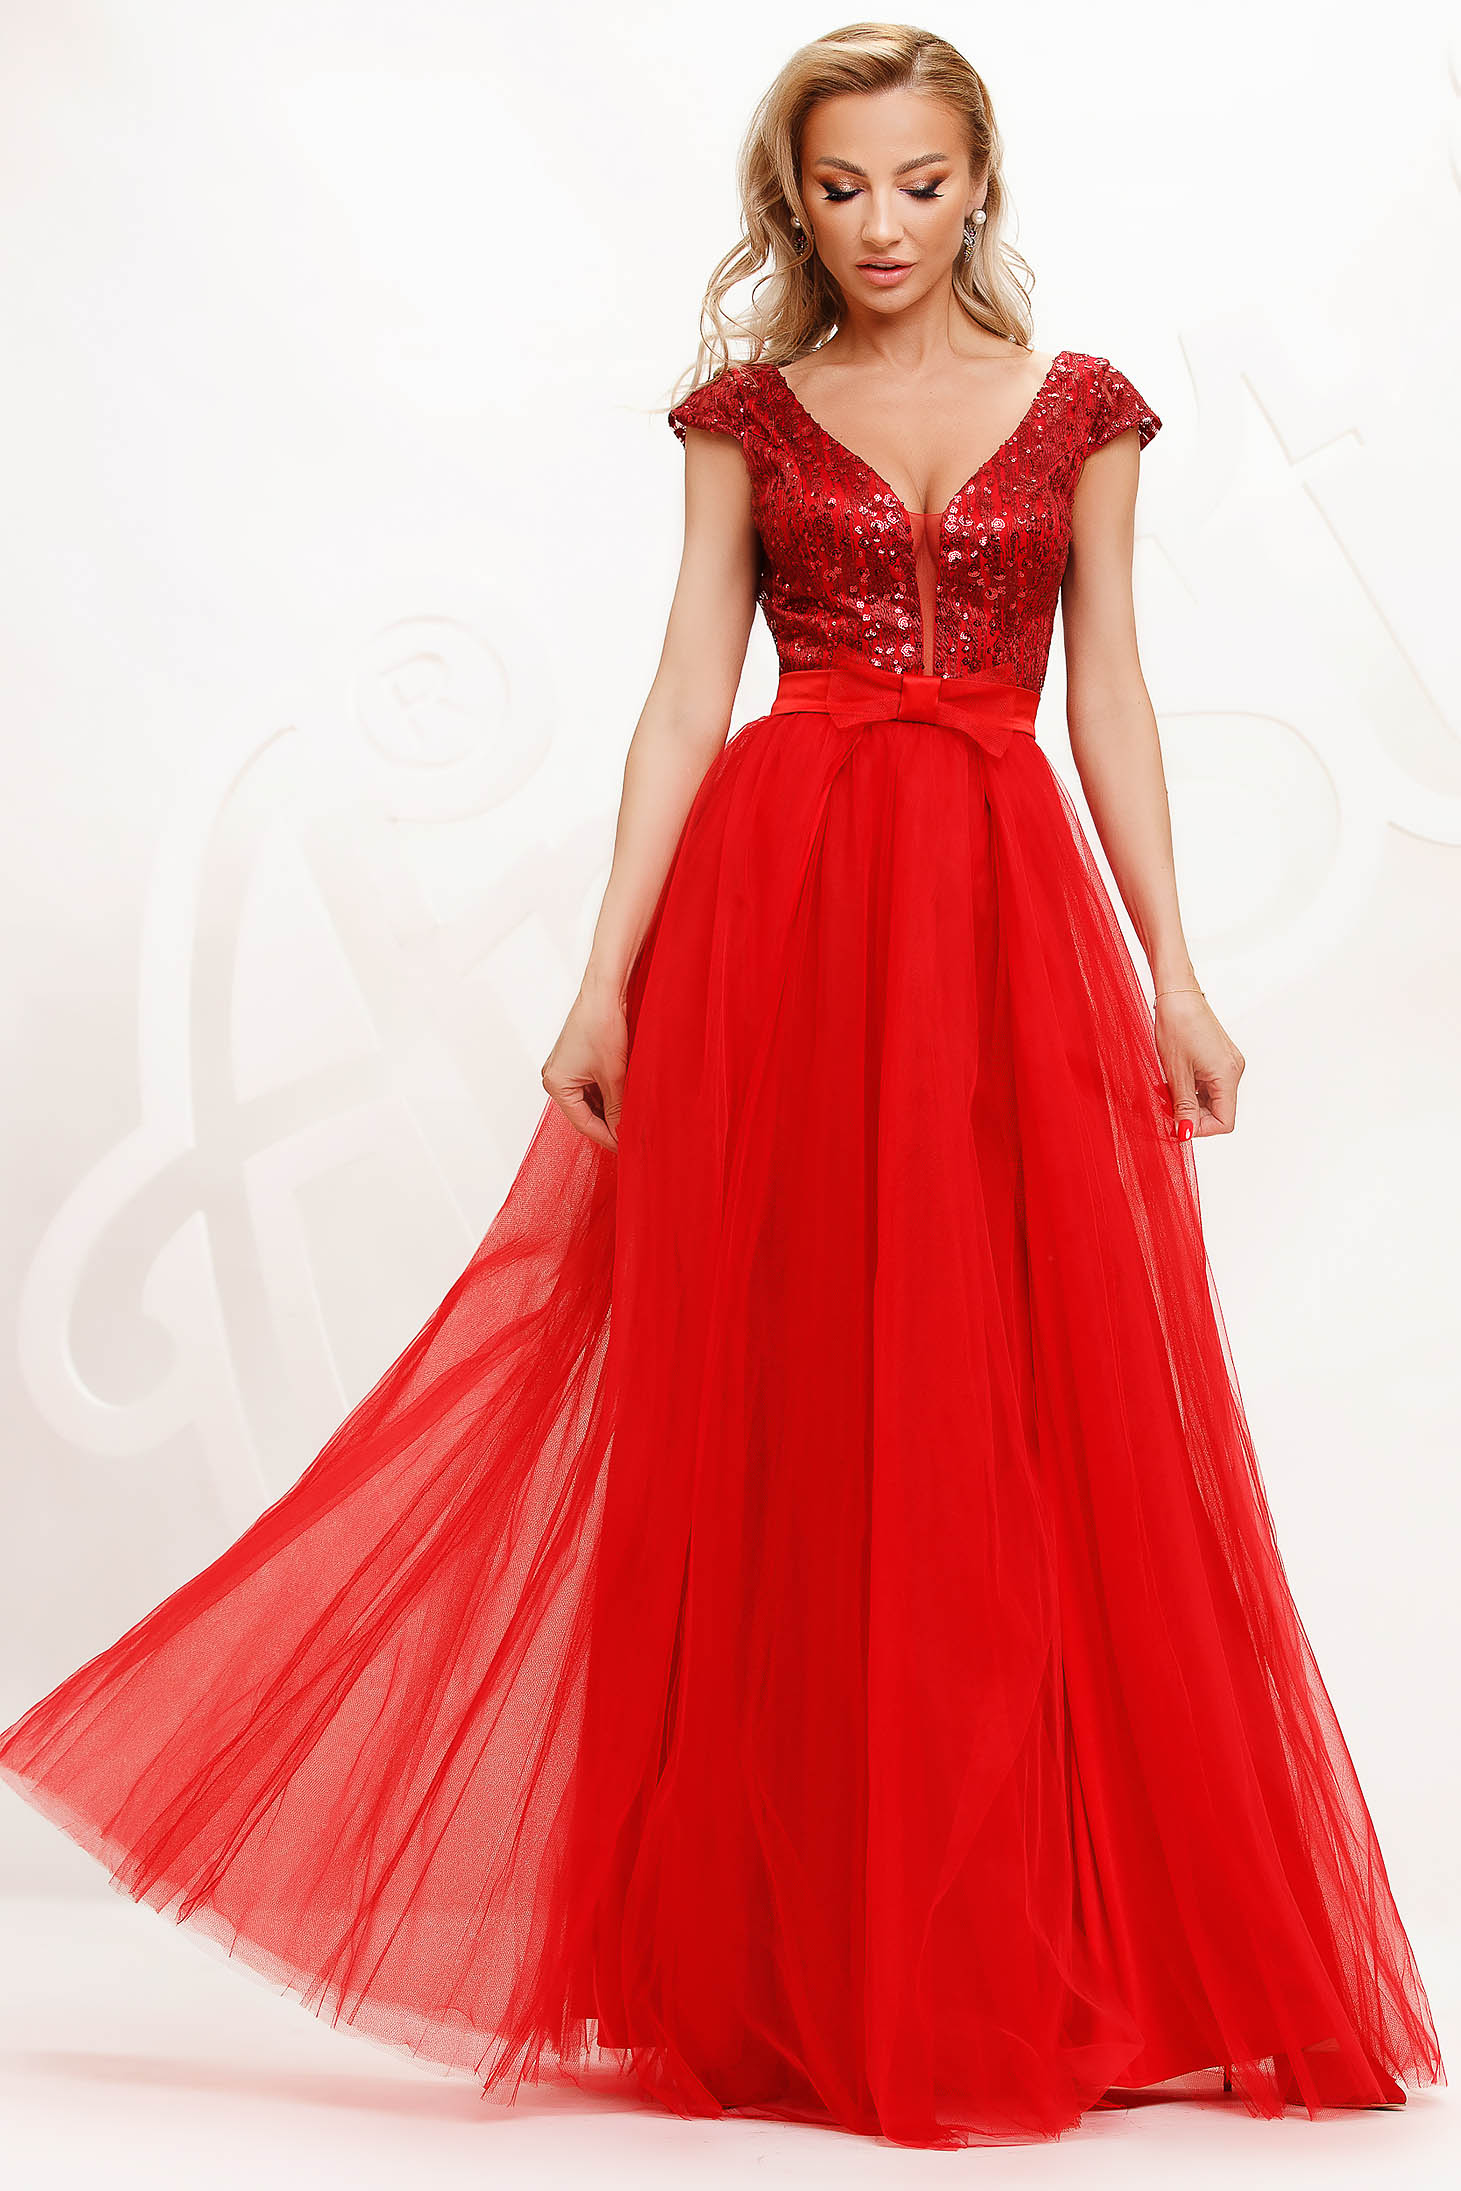 Red dress from tulle cloche occasional slit with sequin embellished details